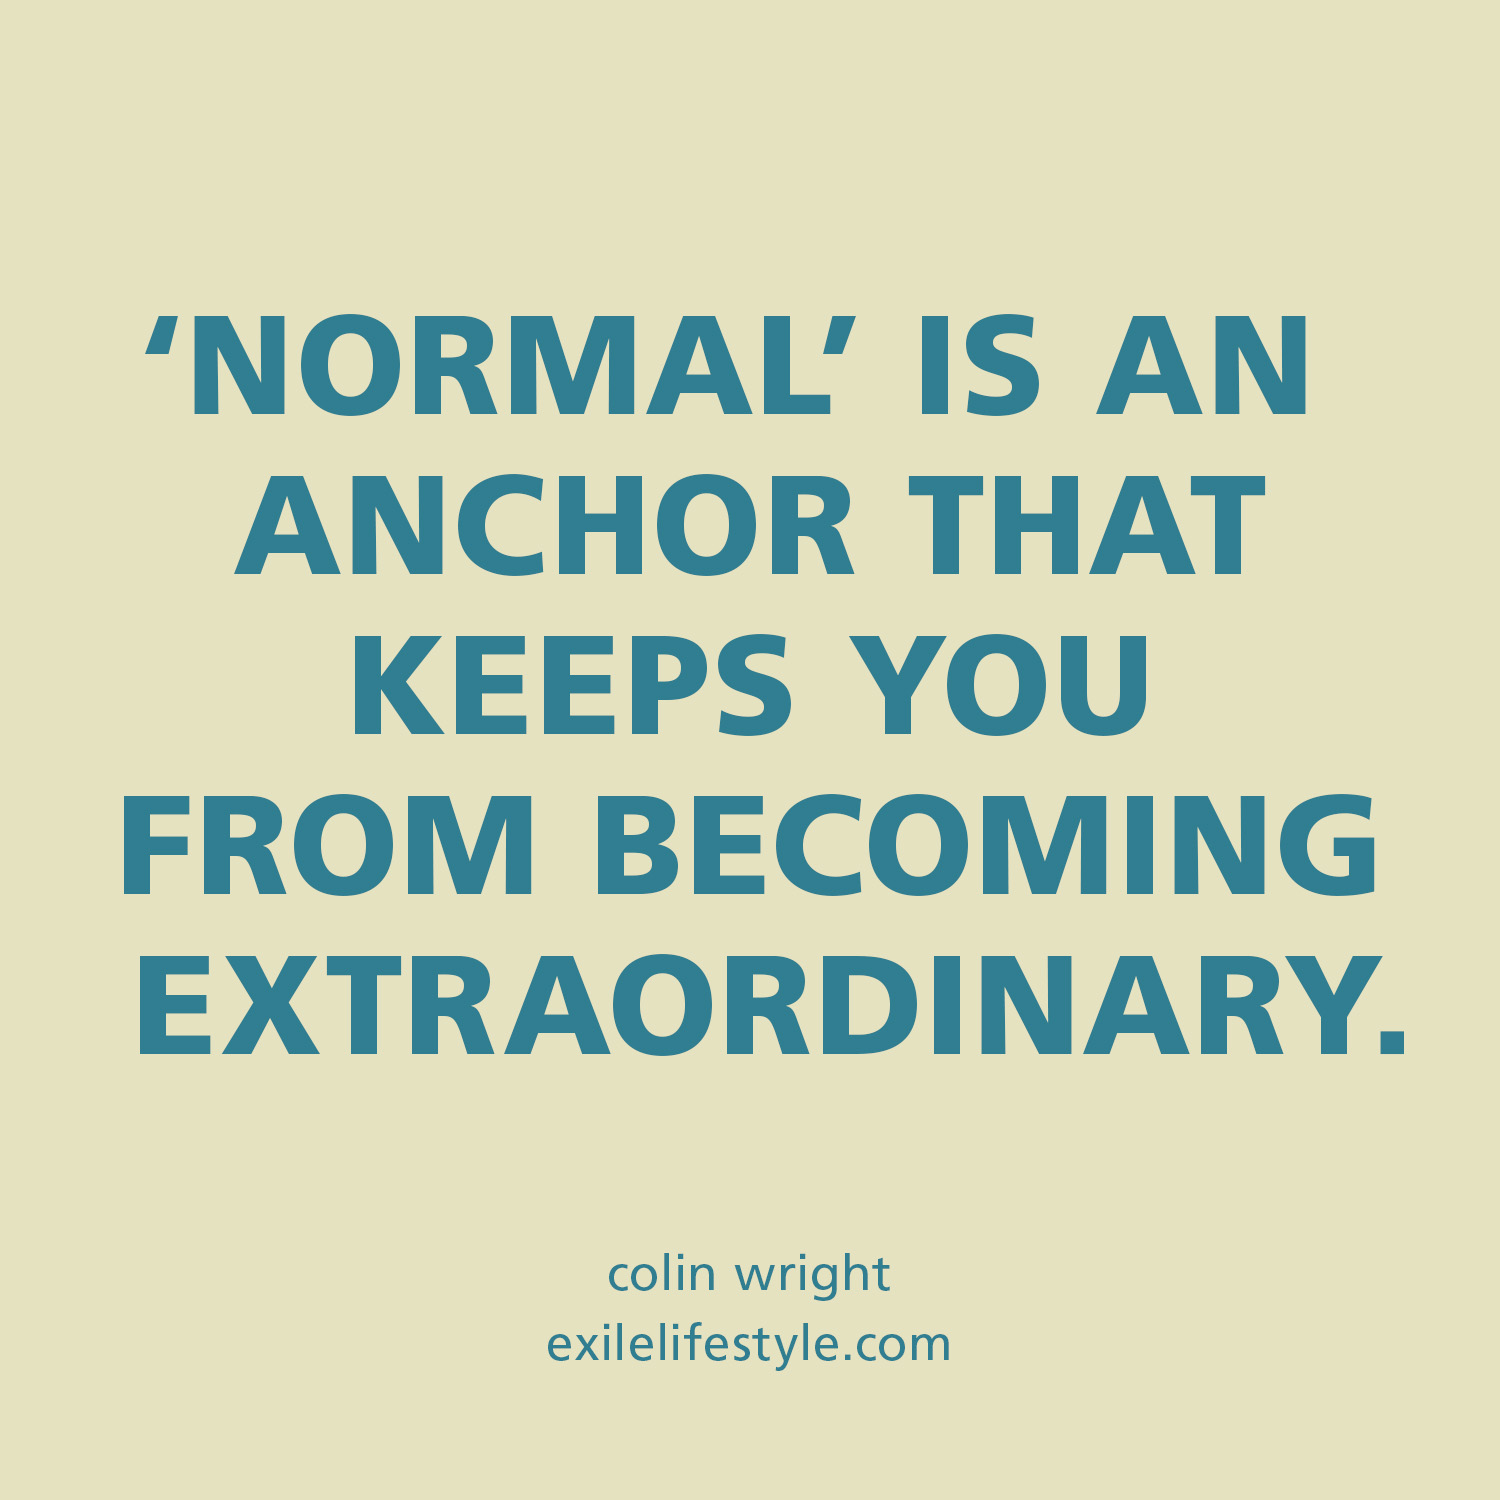 Normal is an anchor that keeps you from becoming extraordinary. Quote by Colin Wright